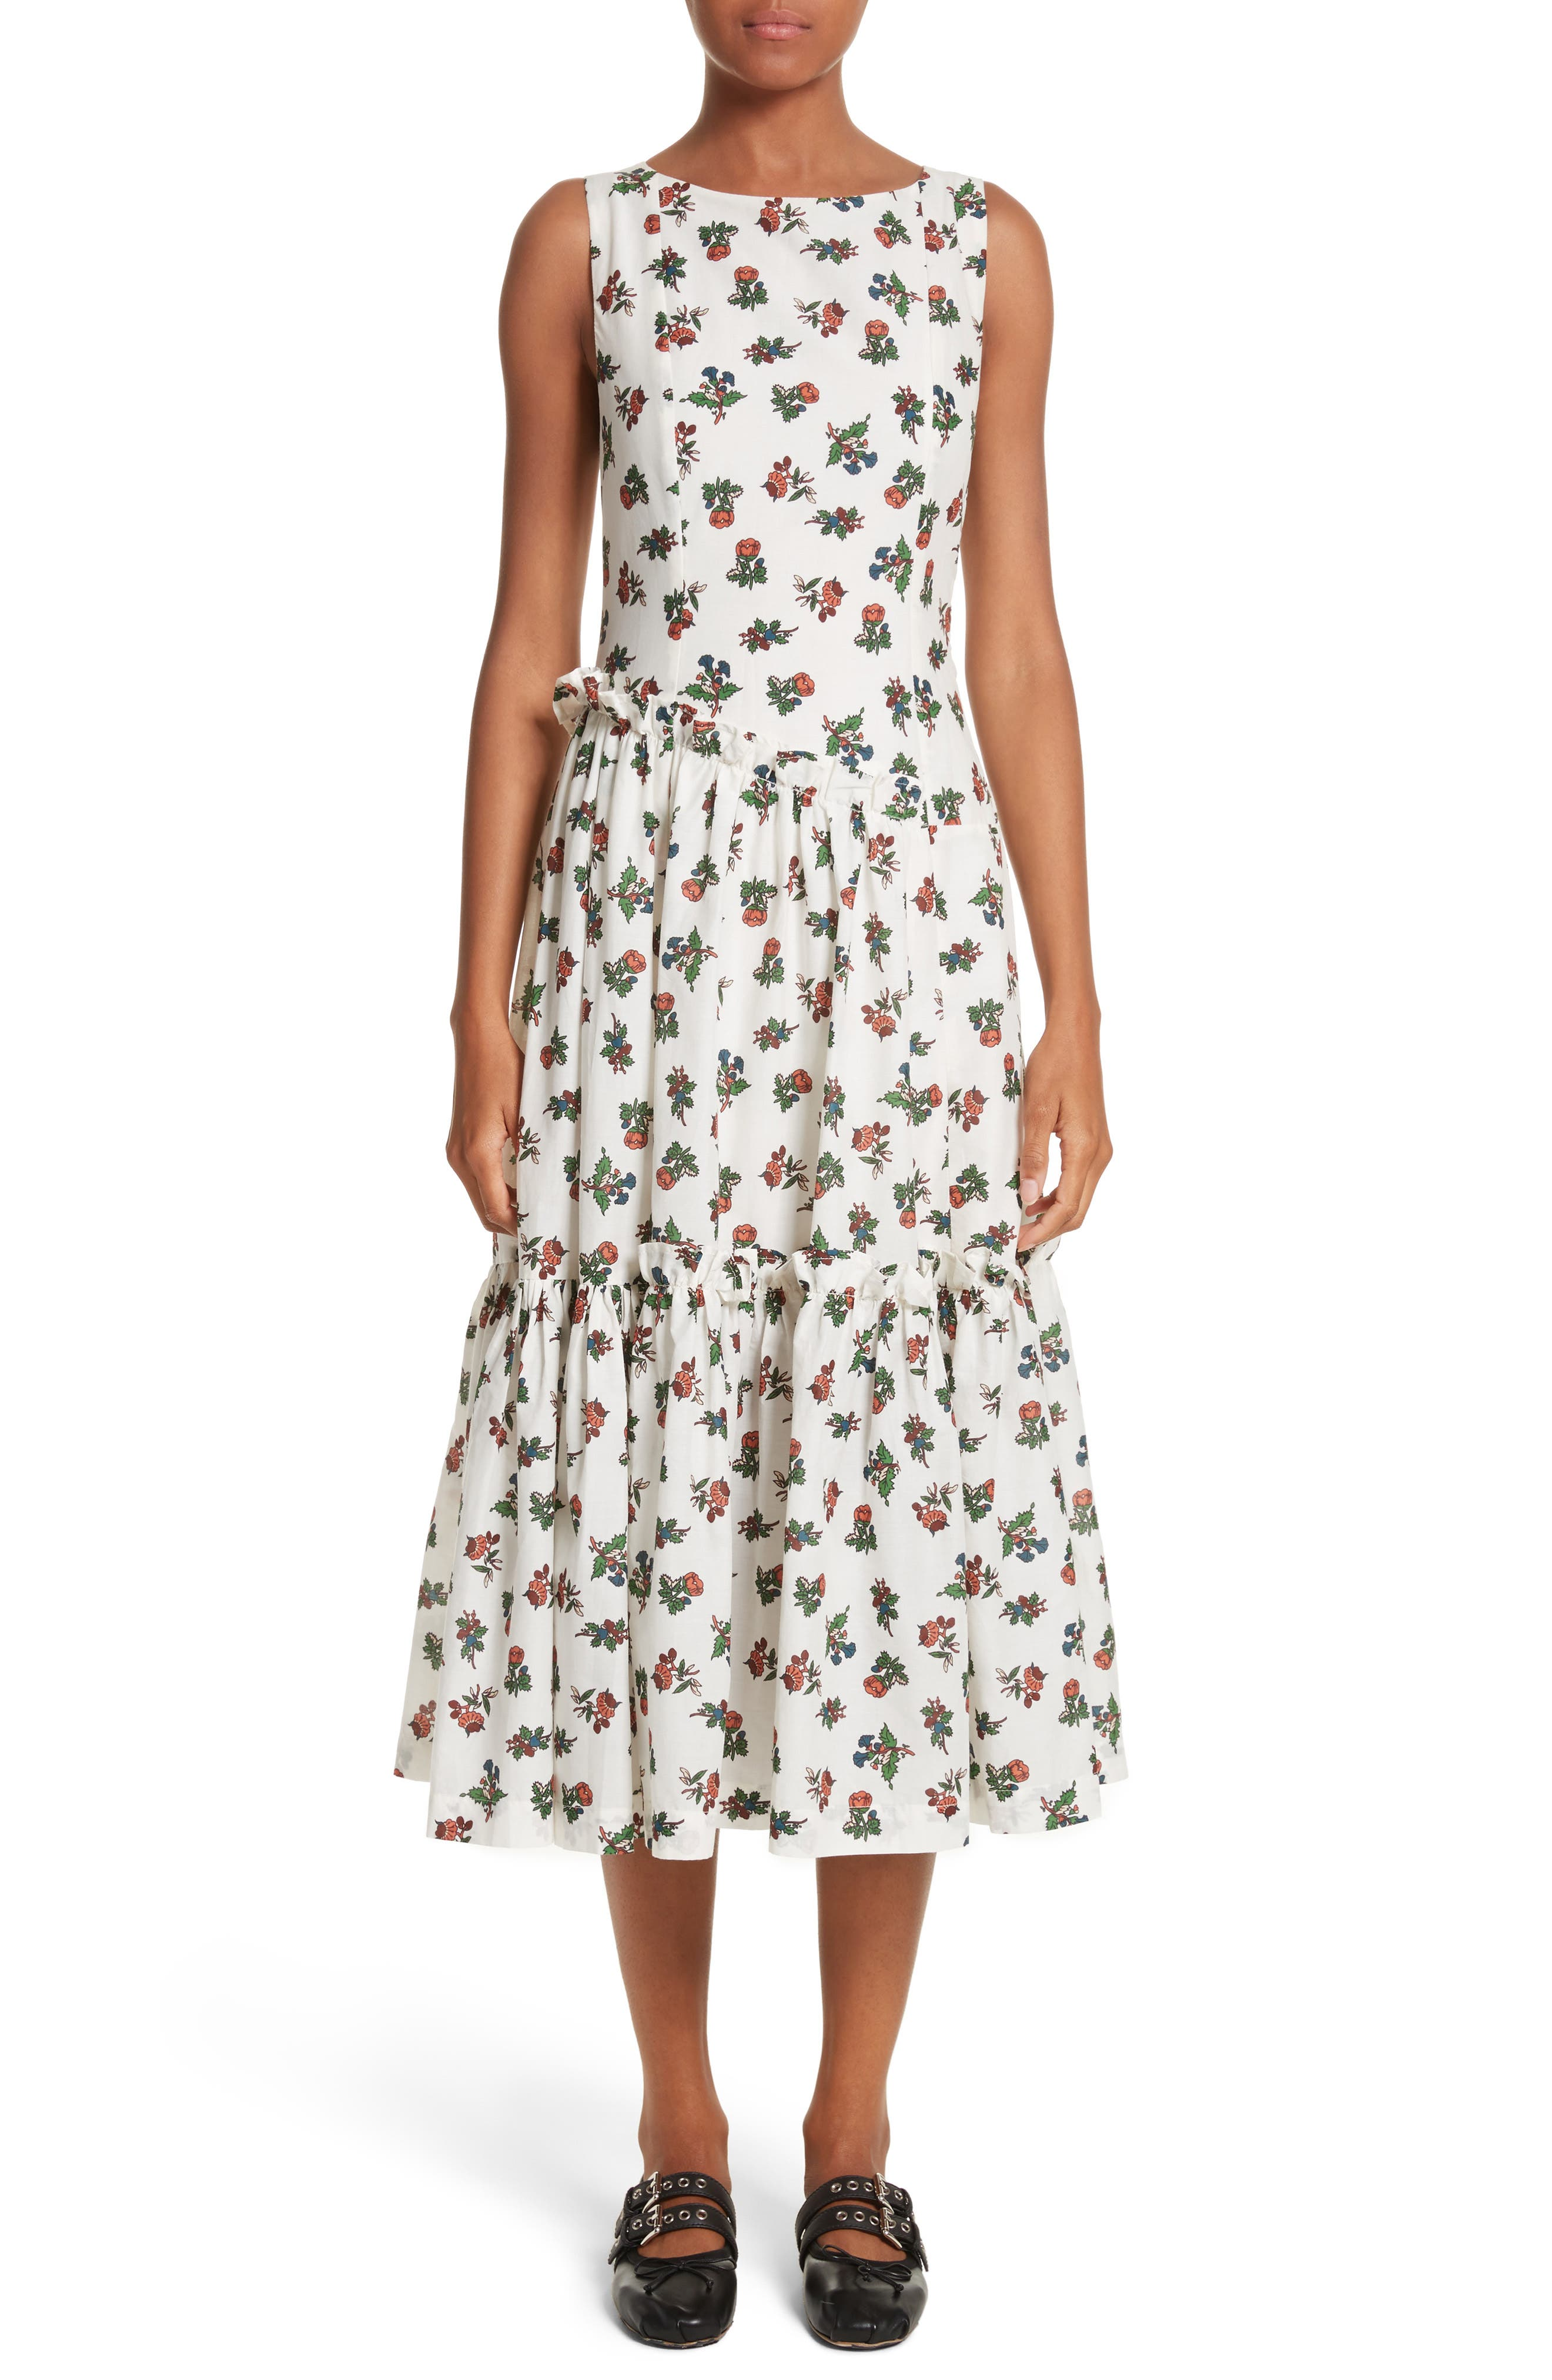 Molly Goddard Lexi Sleeveless Dress